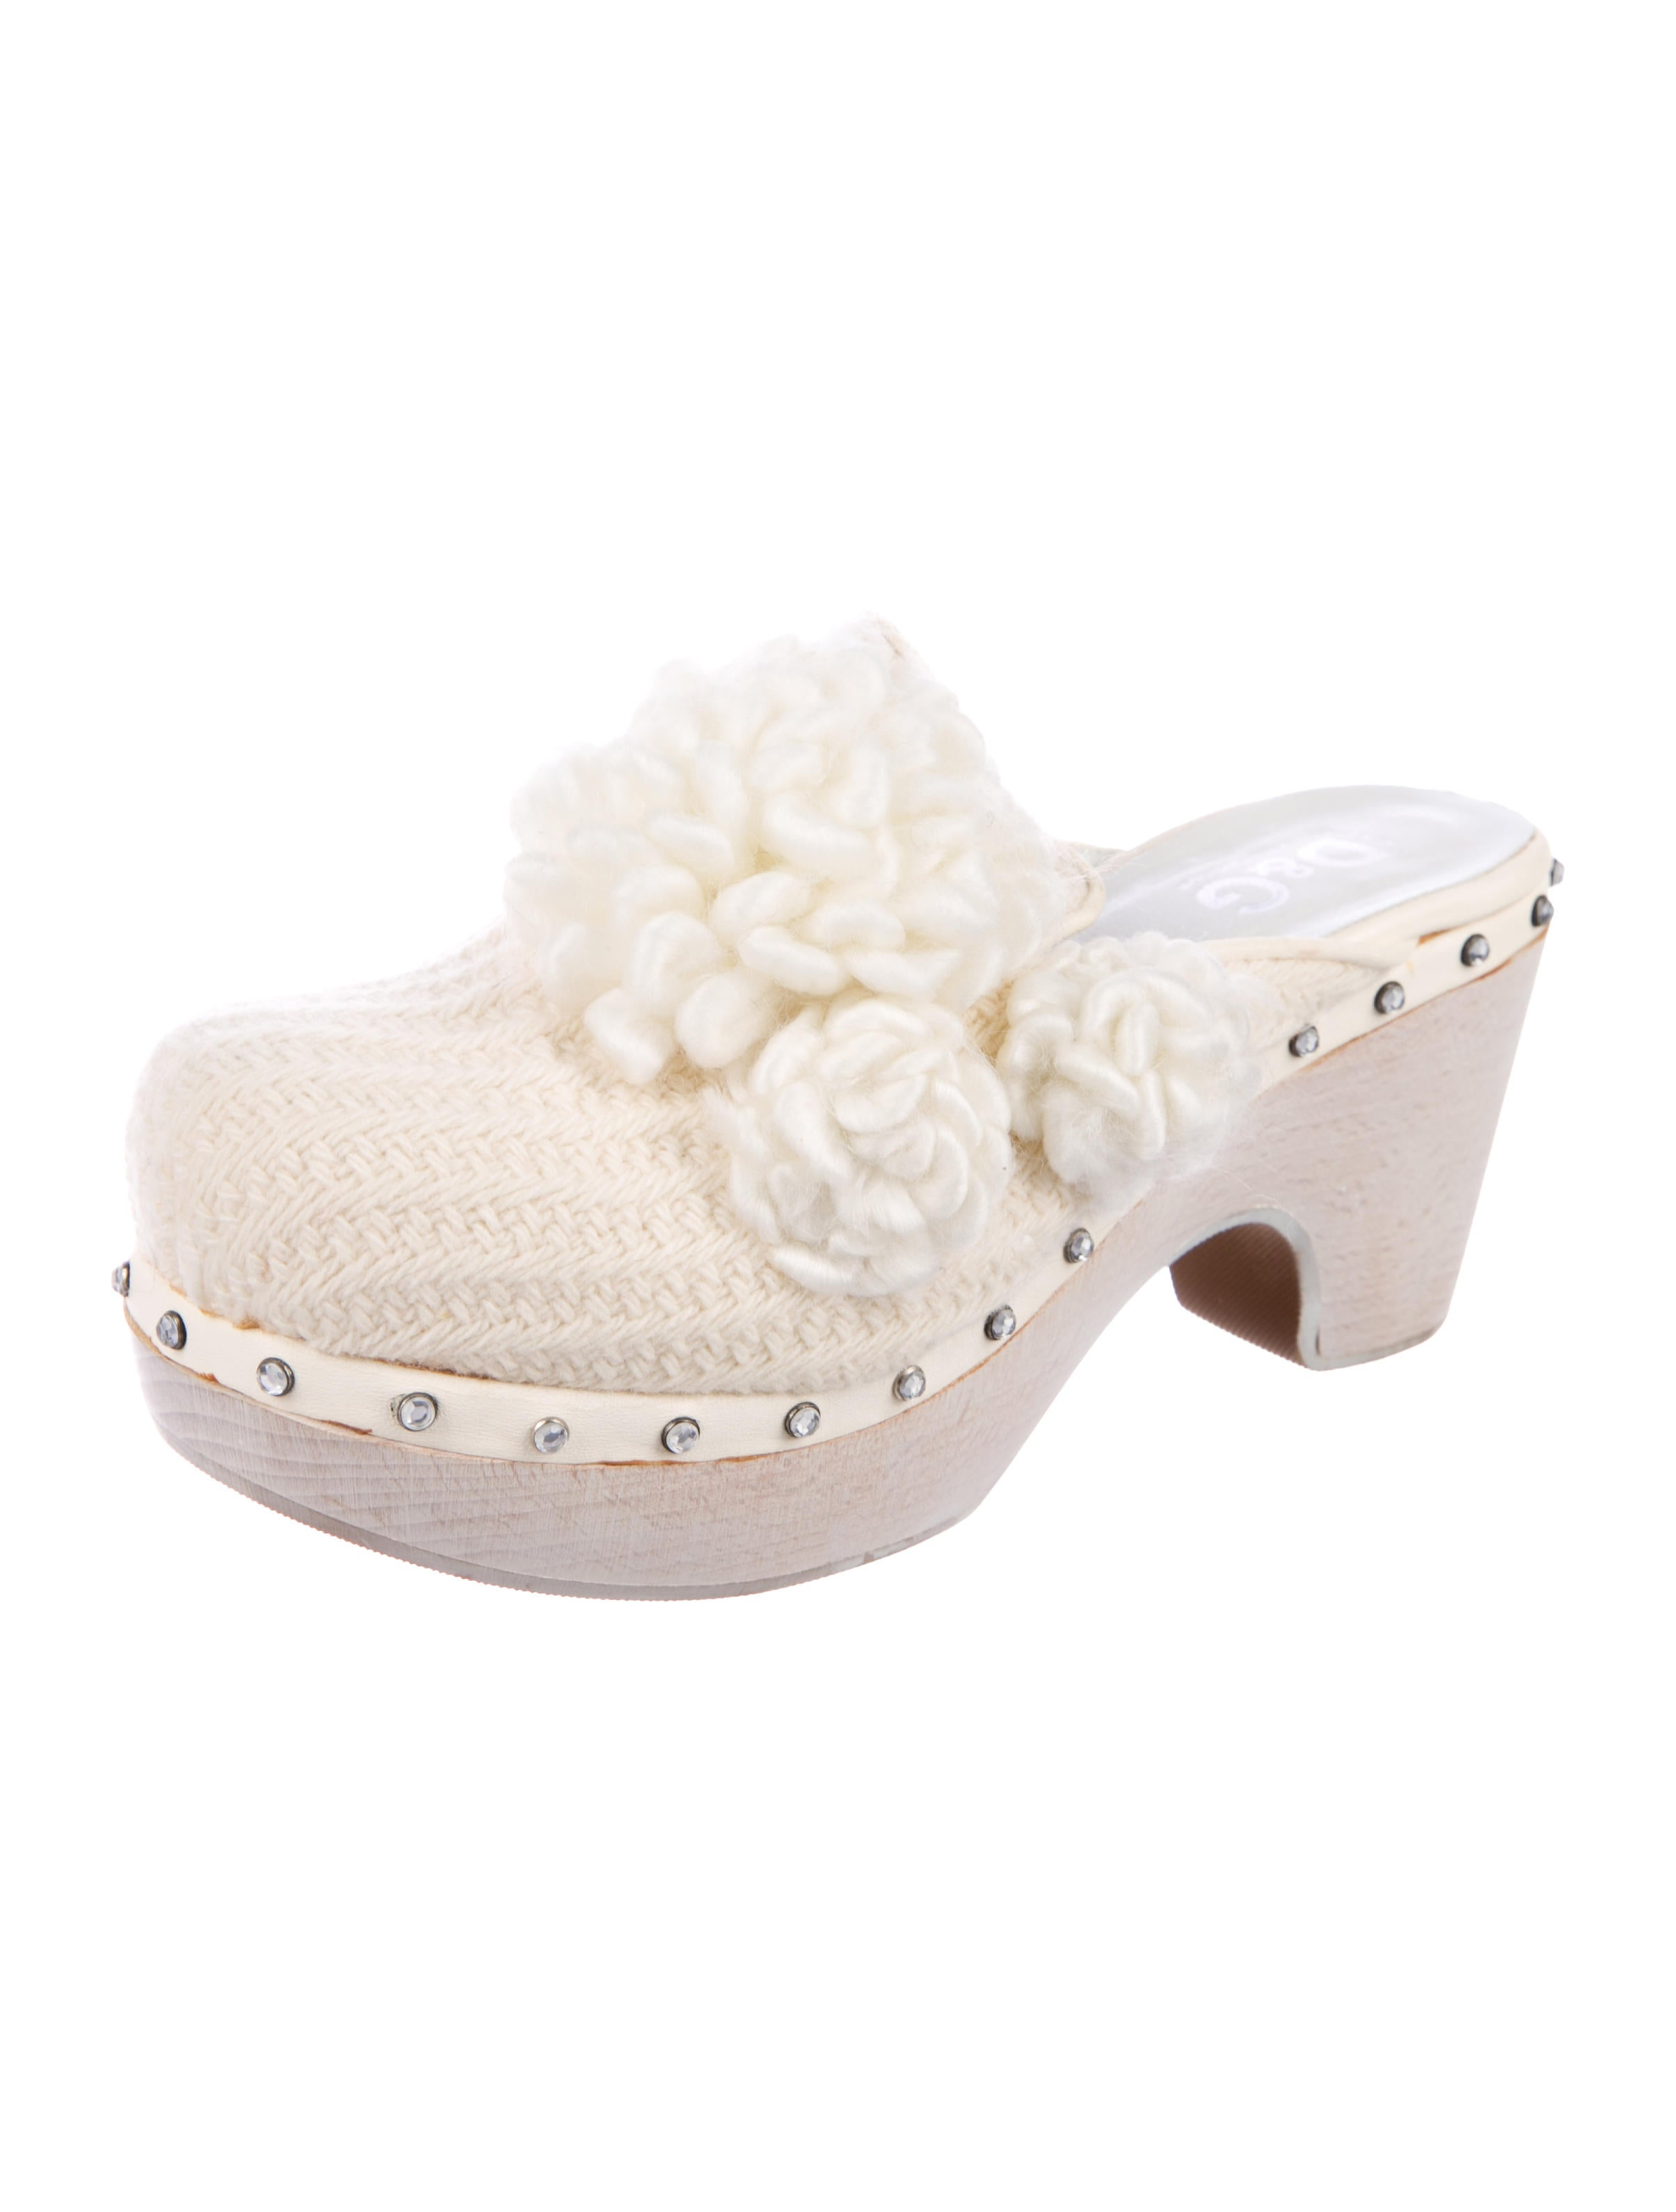 D&G Knit Round-Toe Clogs buy online new buy cheap low price buy cheap amazing price online cheap quality A11xrihn